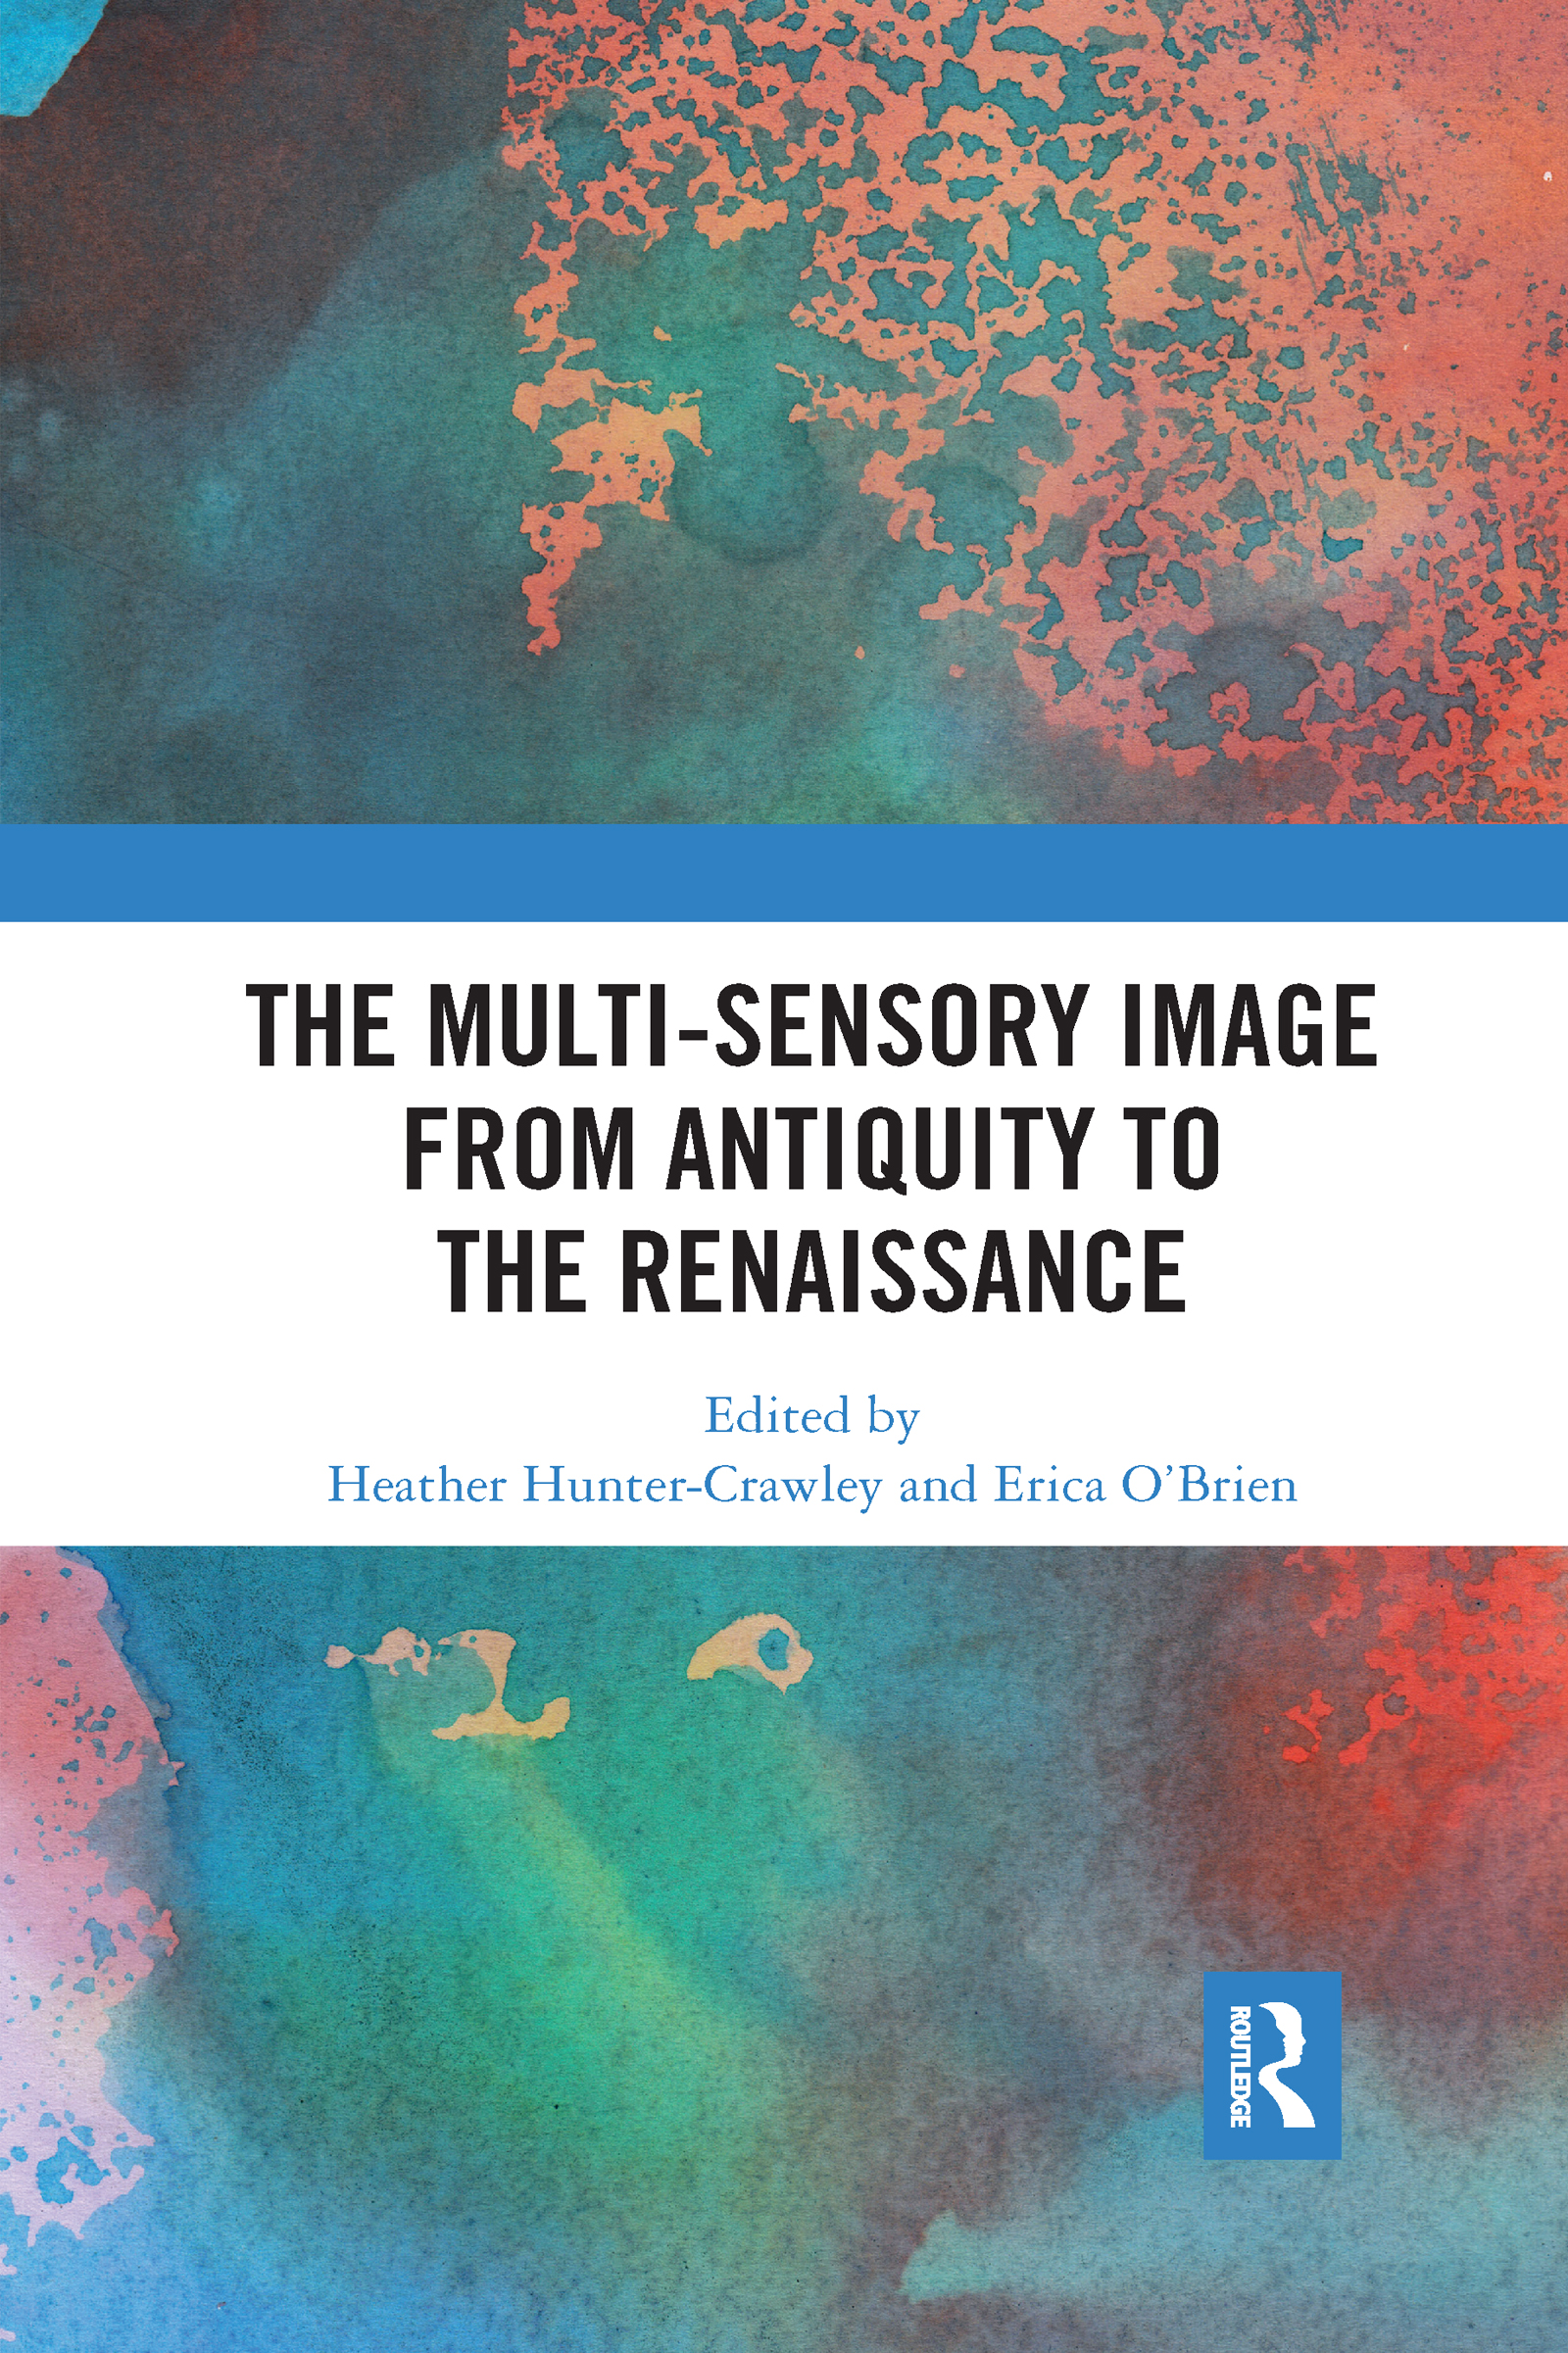 The Multi-Sensory Image from Antiquity to the Renaissance